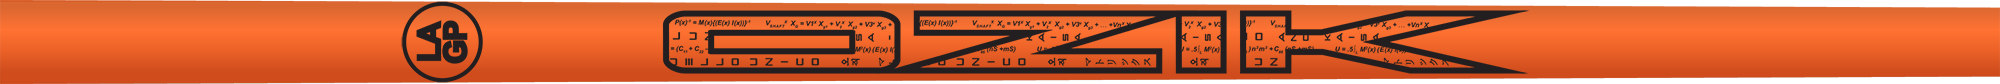 Ozik White Tie: Neon Orange Black Satin - Wood 50 R